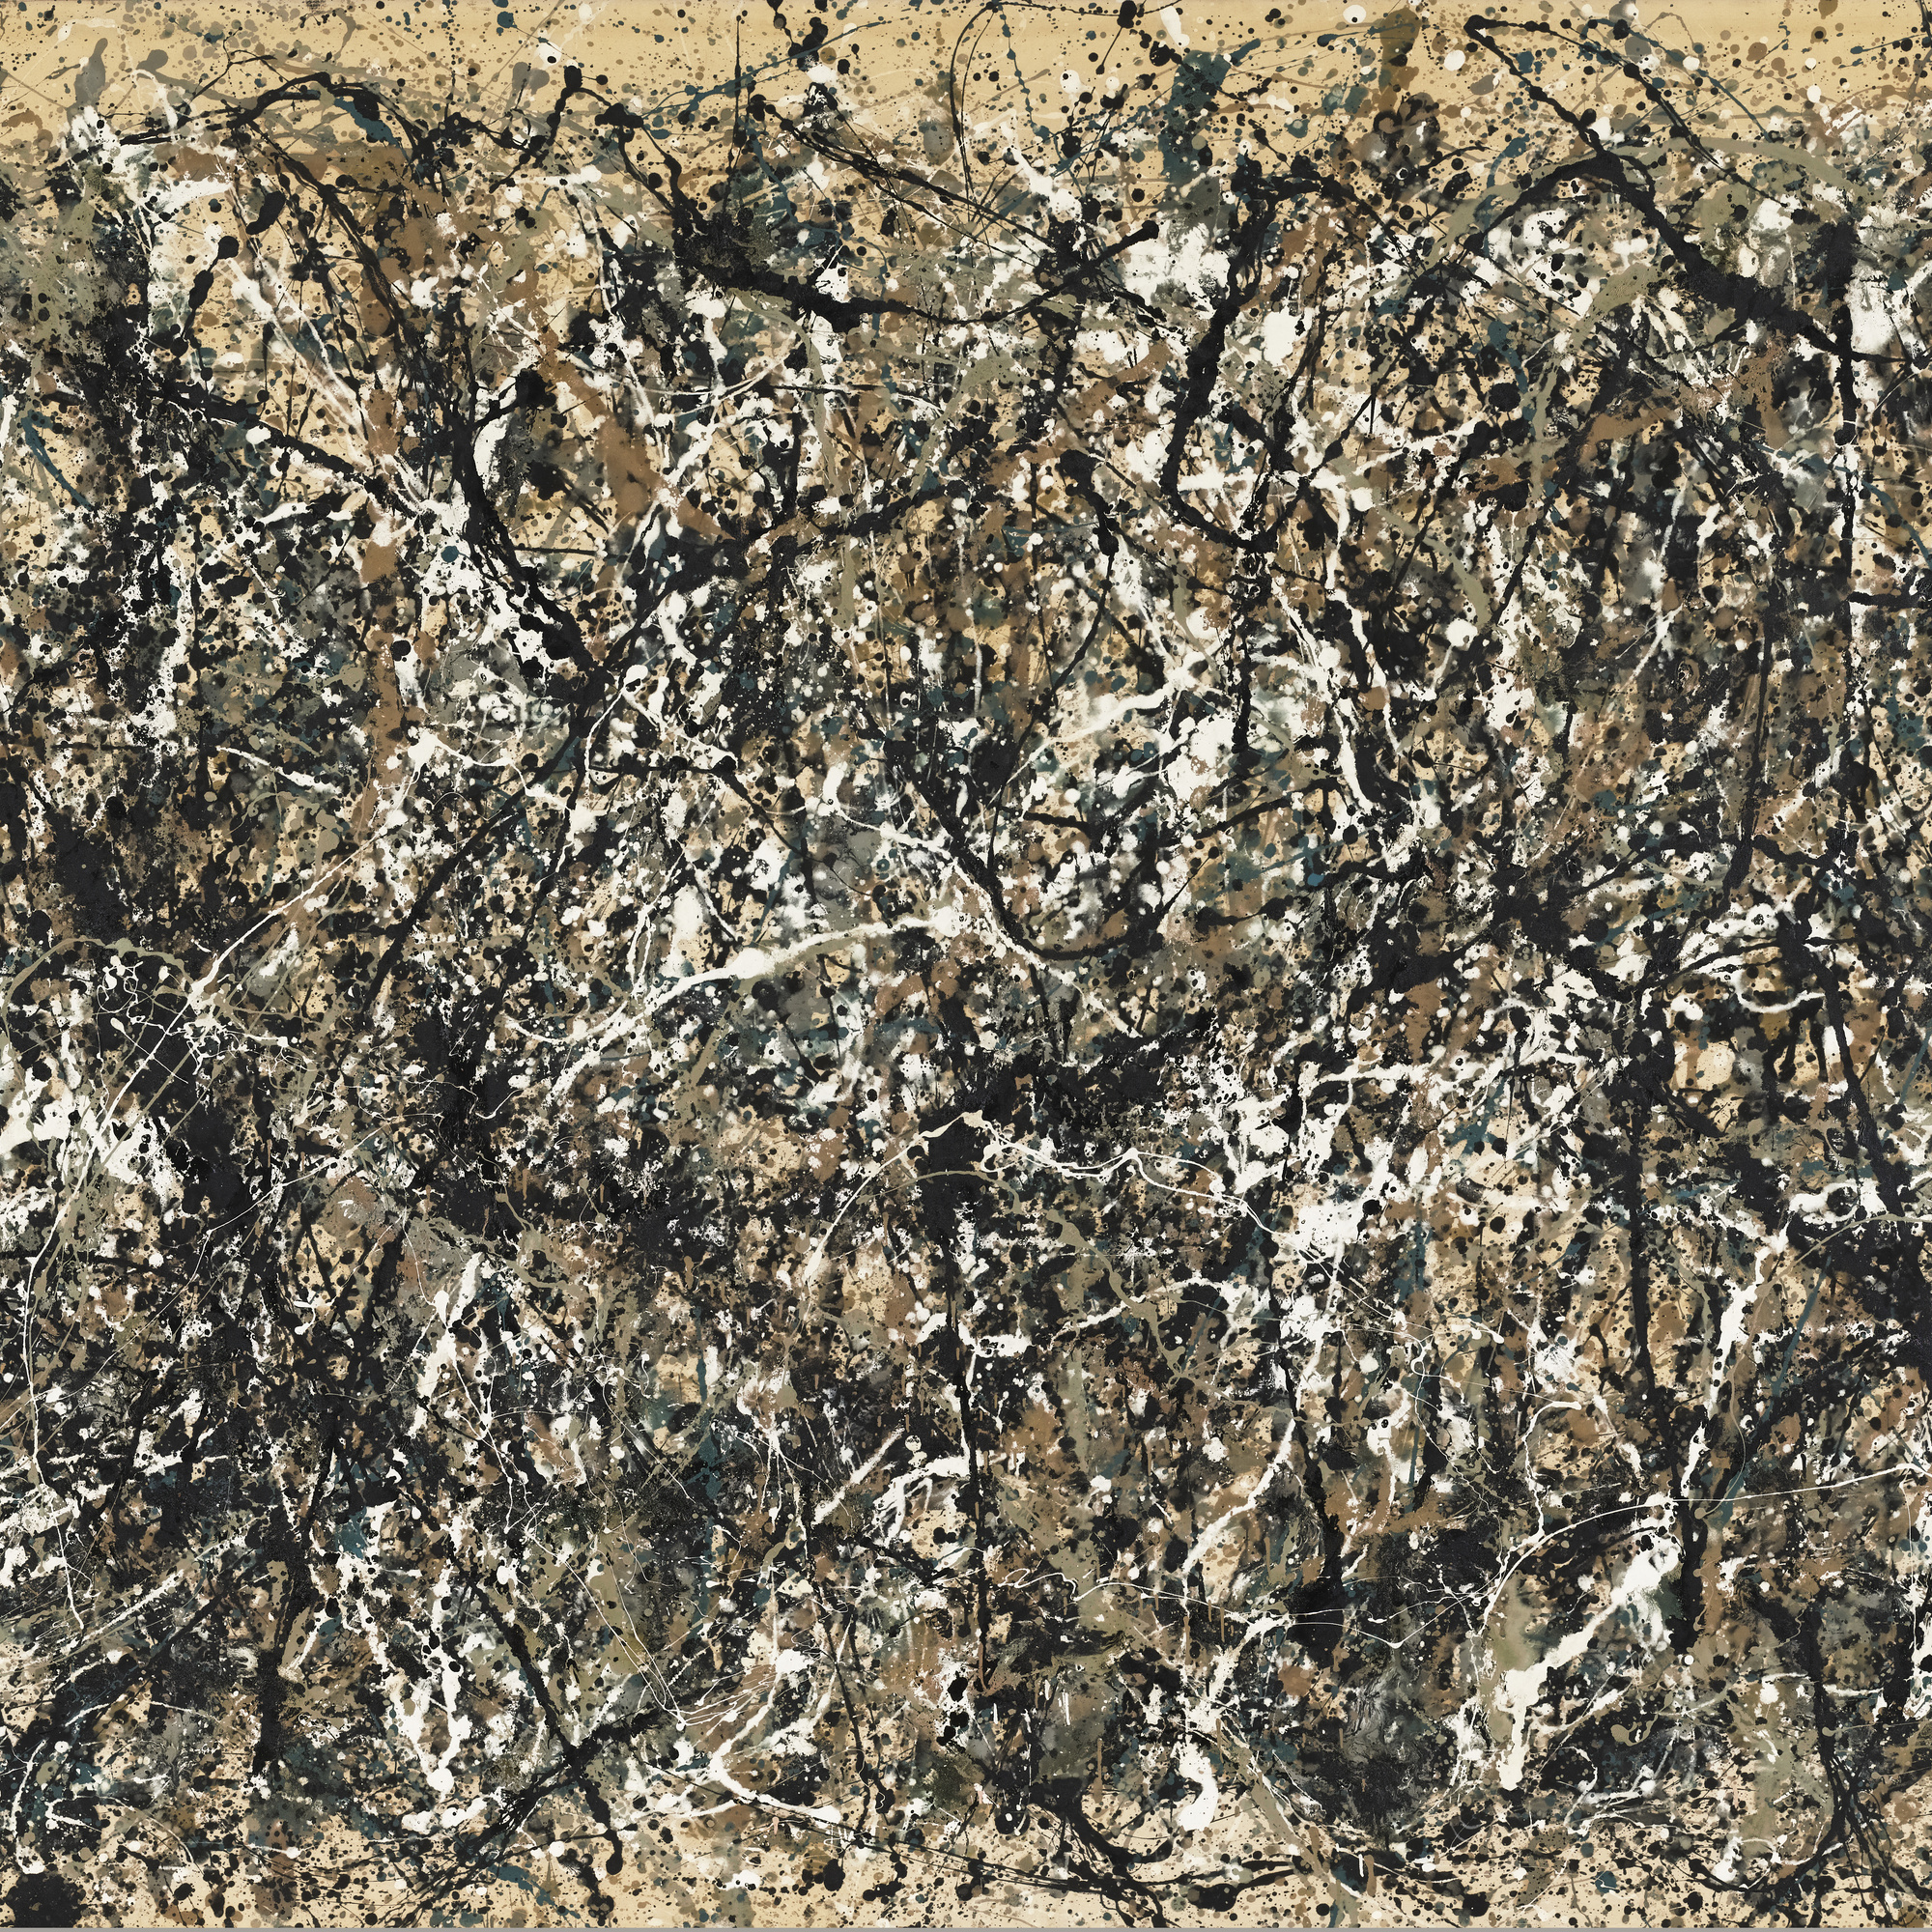 Jackson Pollock. One: Number 31, 1950. 1950. Oil and enamel paint on canvas, 8′ 10″ × 17′ 5 5/8″ (269.5 × 530.8 cm). Sidney and Harriet Janis Collection Fund (by exchange). © 2011 Pollock-Krasner Foundation / Artists Rights Society (ARS), New York